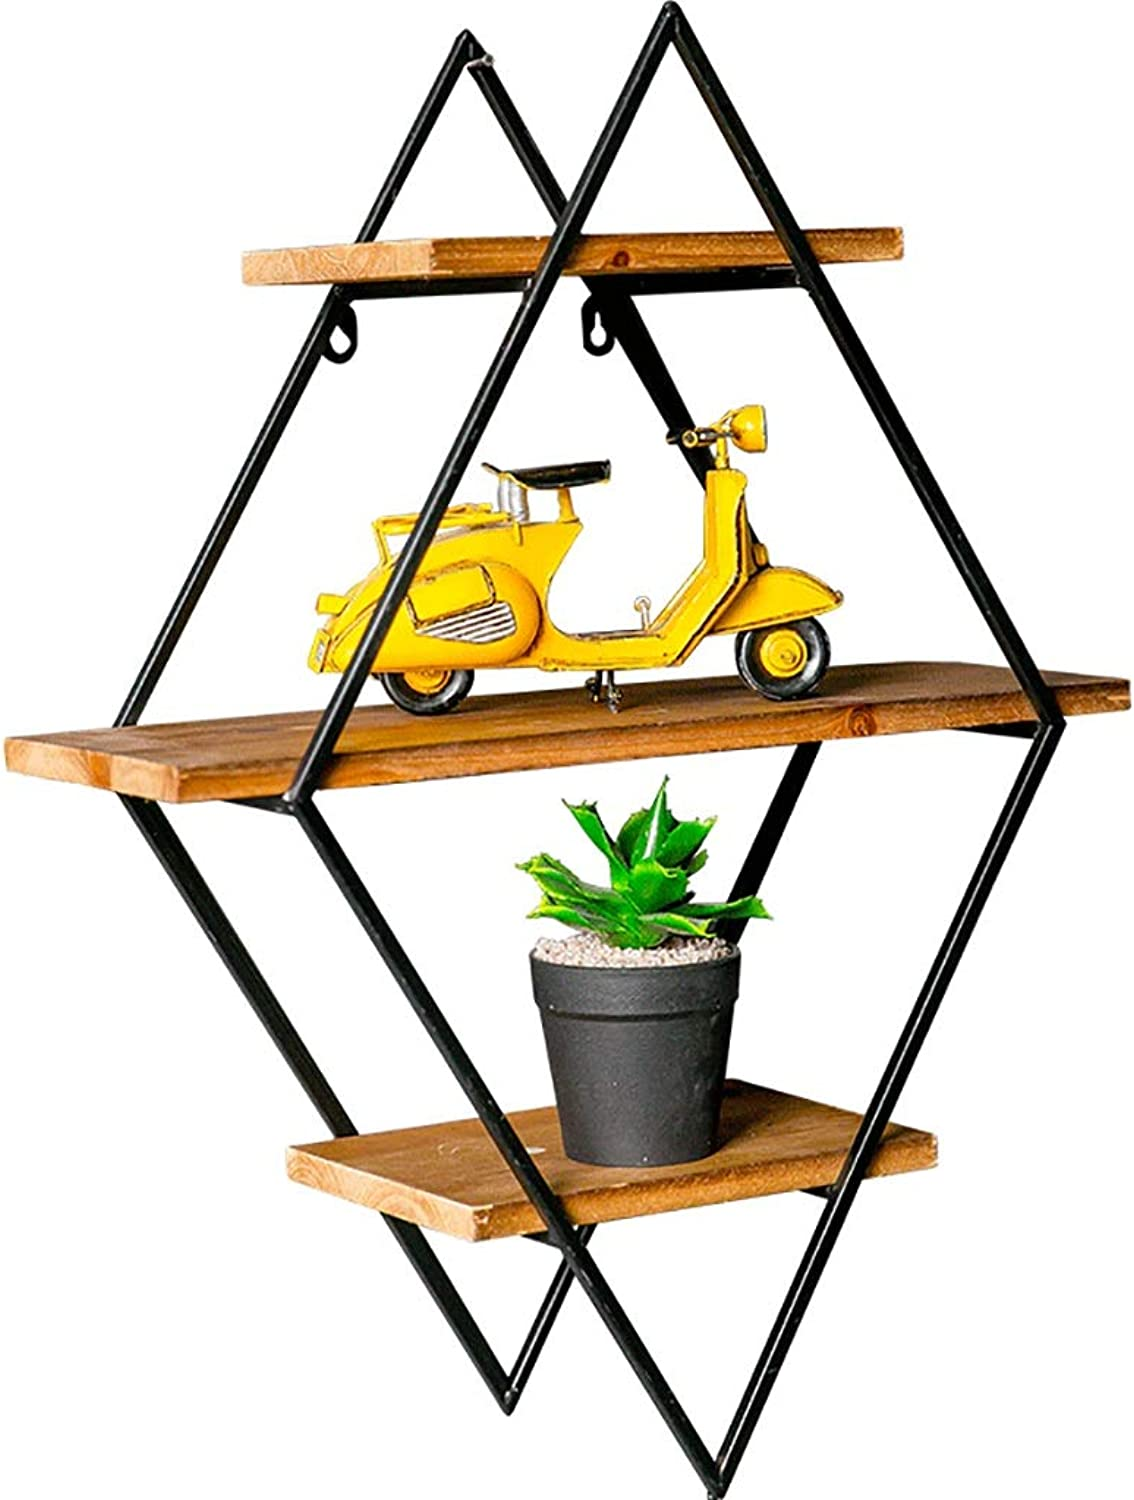 Iron Wall partition Shelf Wall Hanging Room Living Room bar Wall Decoration Wall Storage Shelf (Size   48  16  64cm)